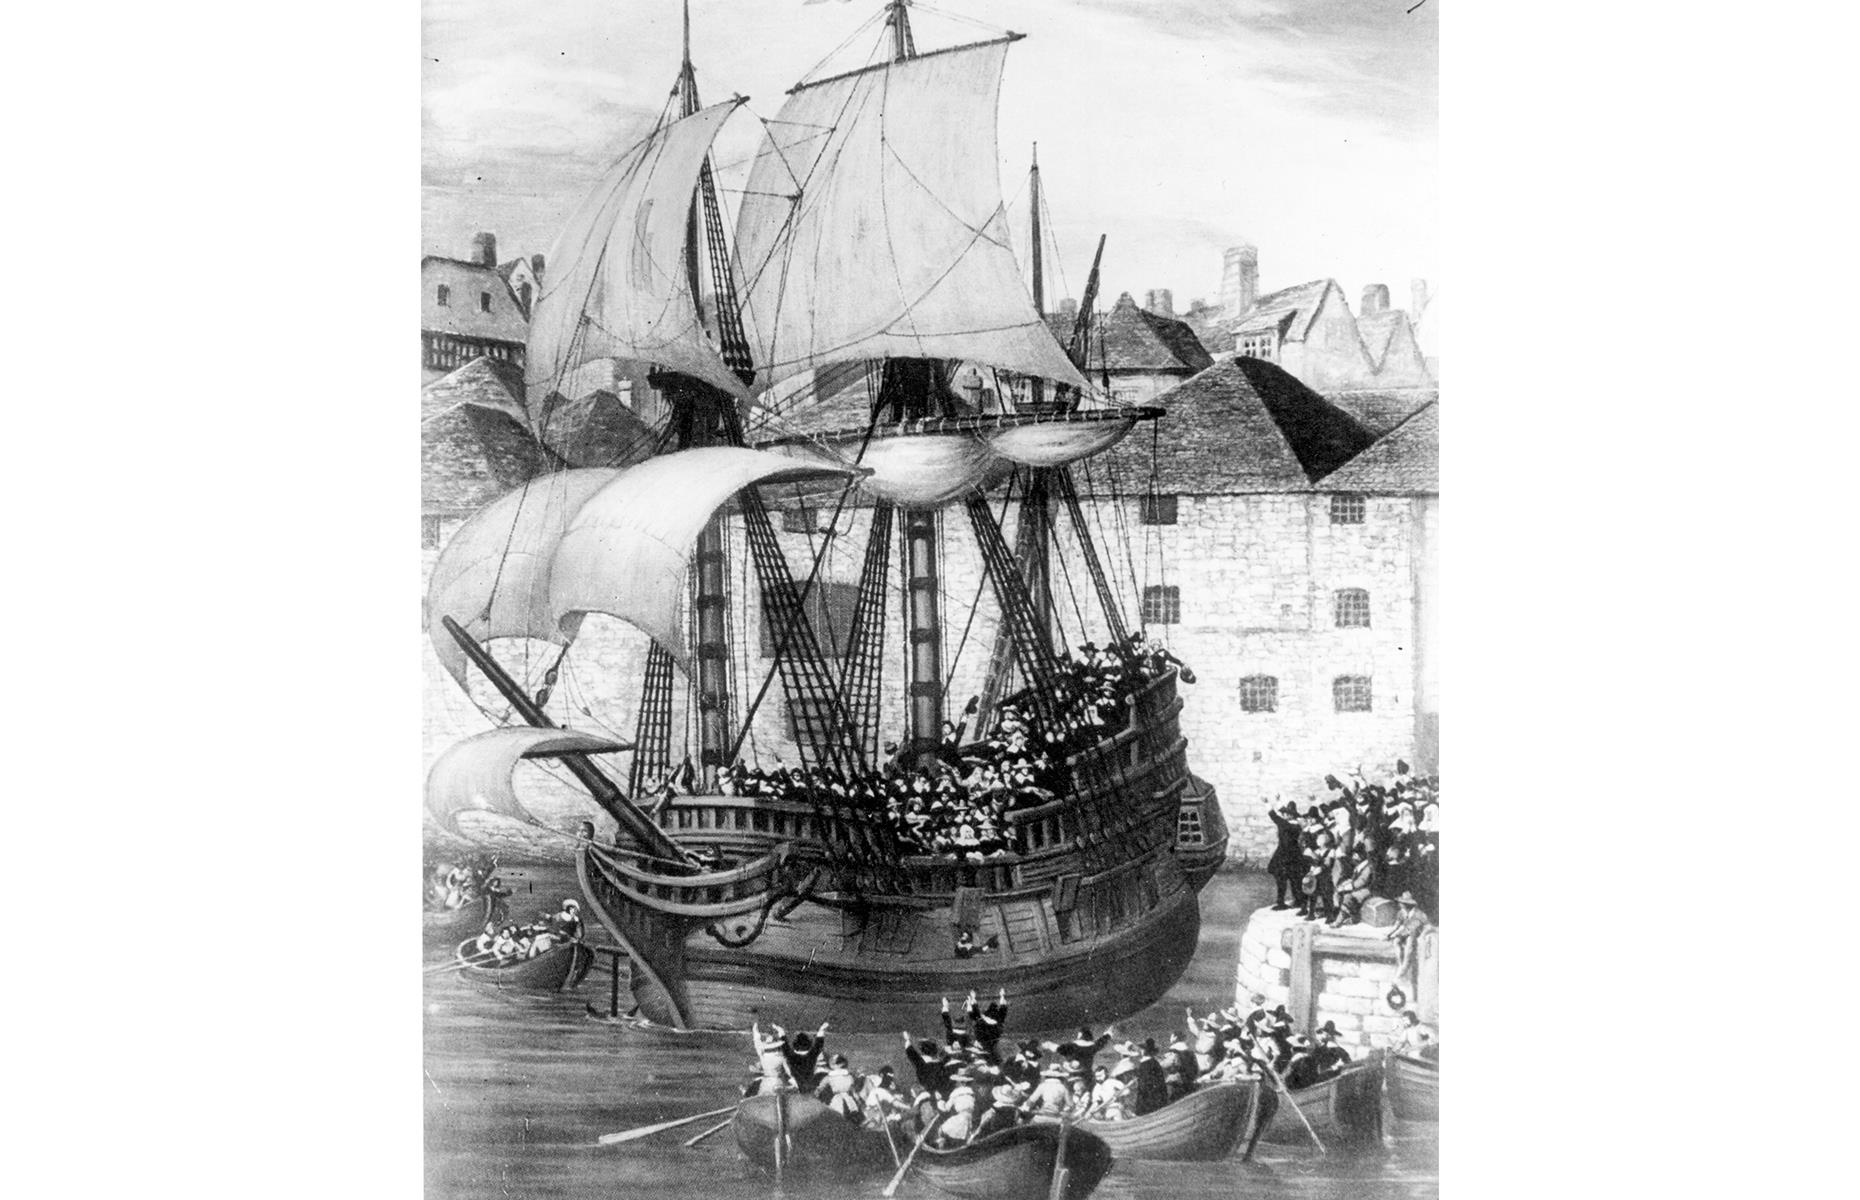 Slide 10 of 23: The Mayflower eventually left the port of Plymouth in September (as captured in this drawing). The ship was captained by Christopher Jones (who likely resided in its stern), while the passengers – including key figures like Separatist leader William Brewster – would have made do with the cramped, chilly conditions of the cargo deck.